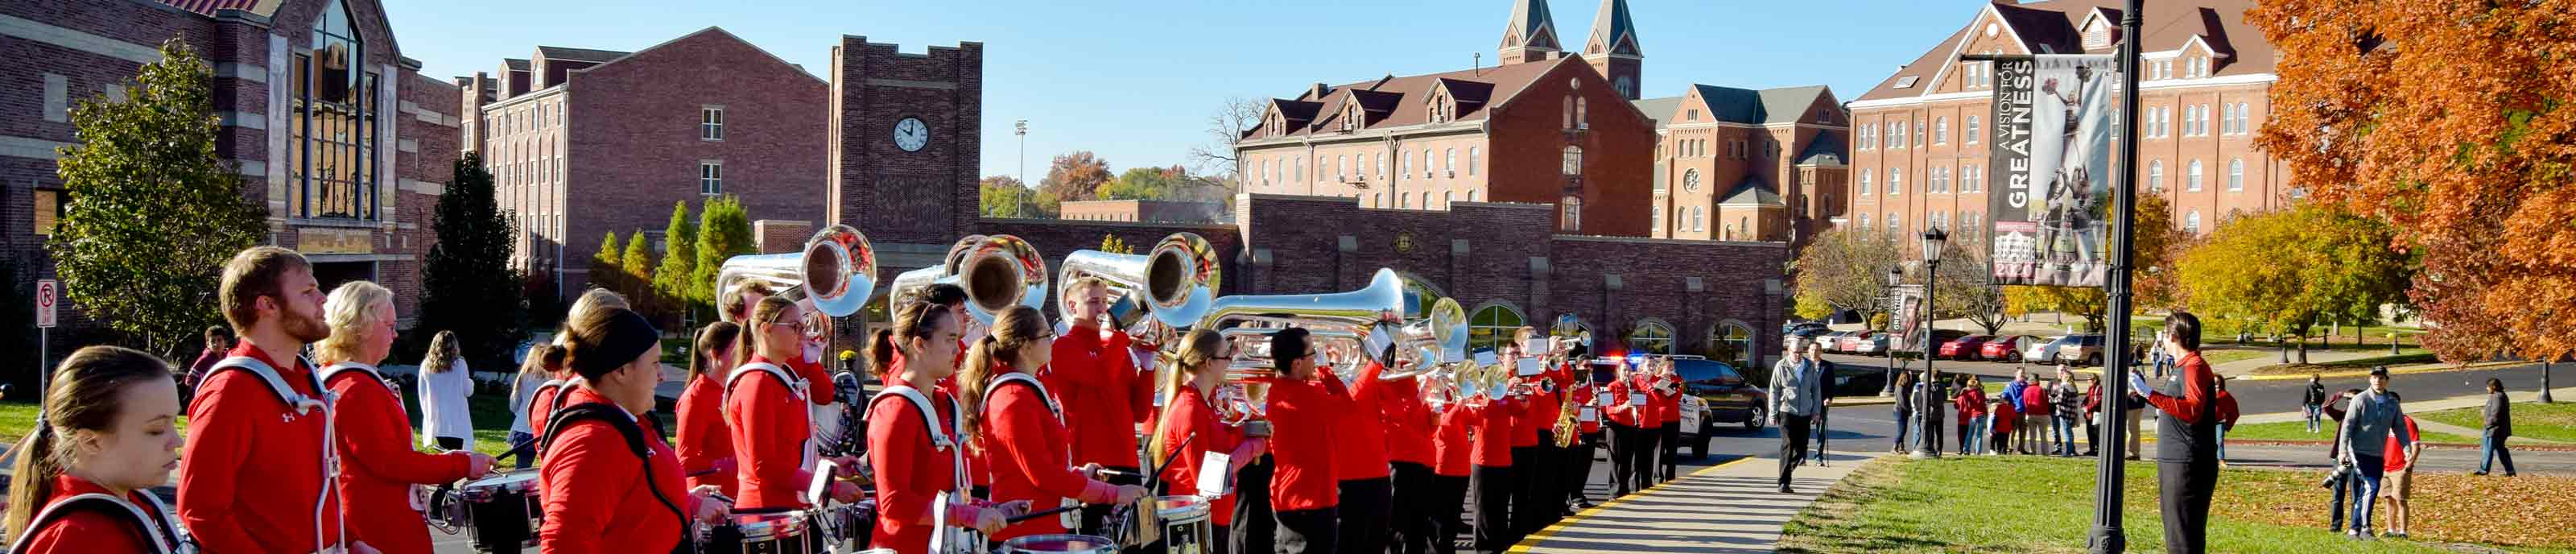 The Raven Regiment, Benedictine College's Marching Band, plays at a homecoming event